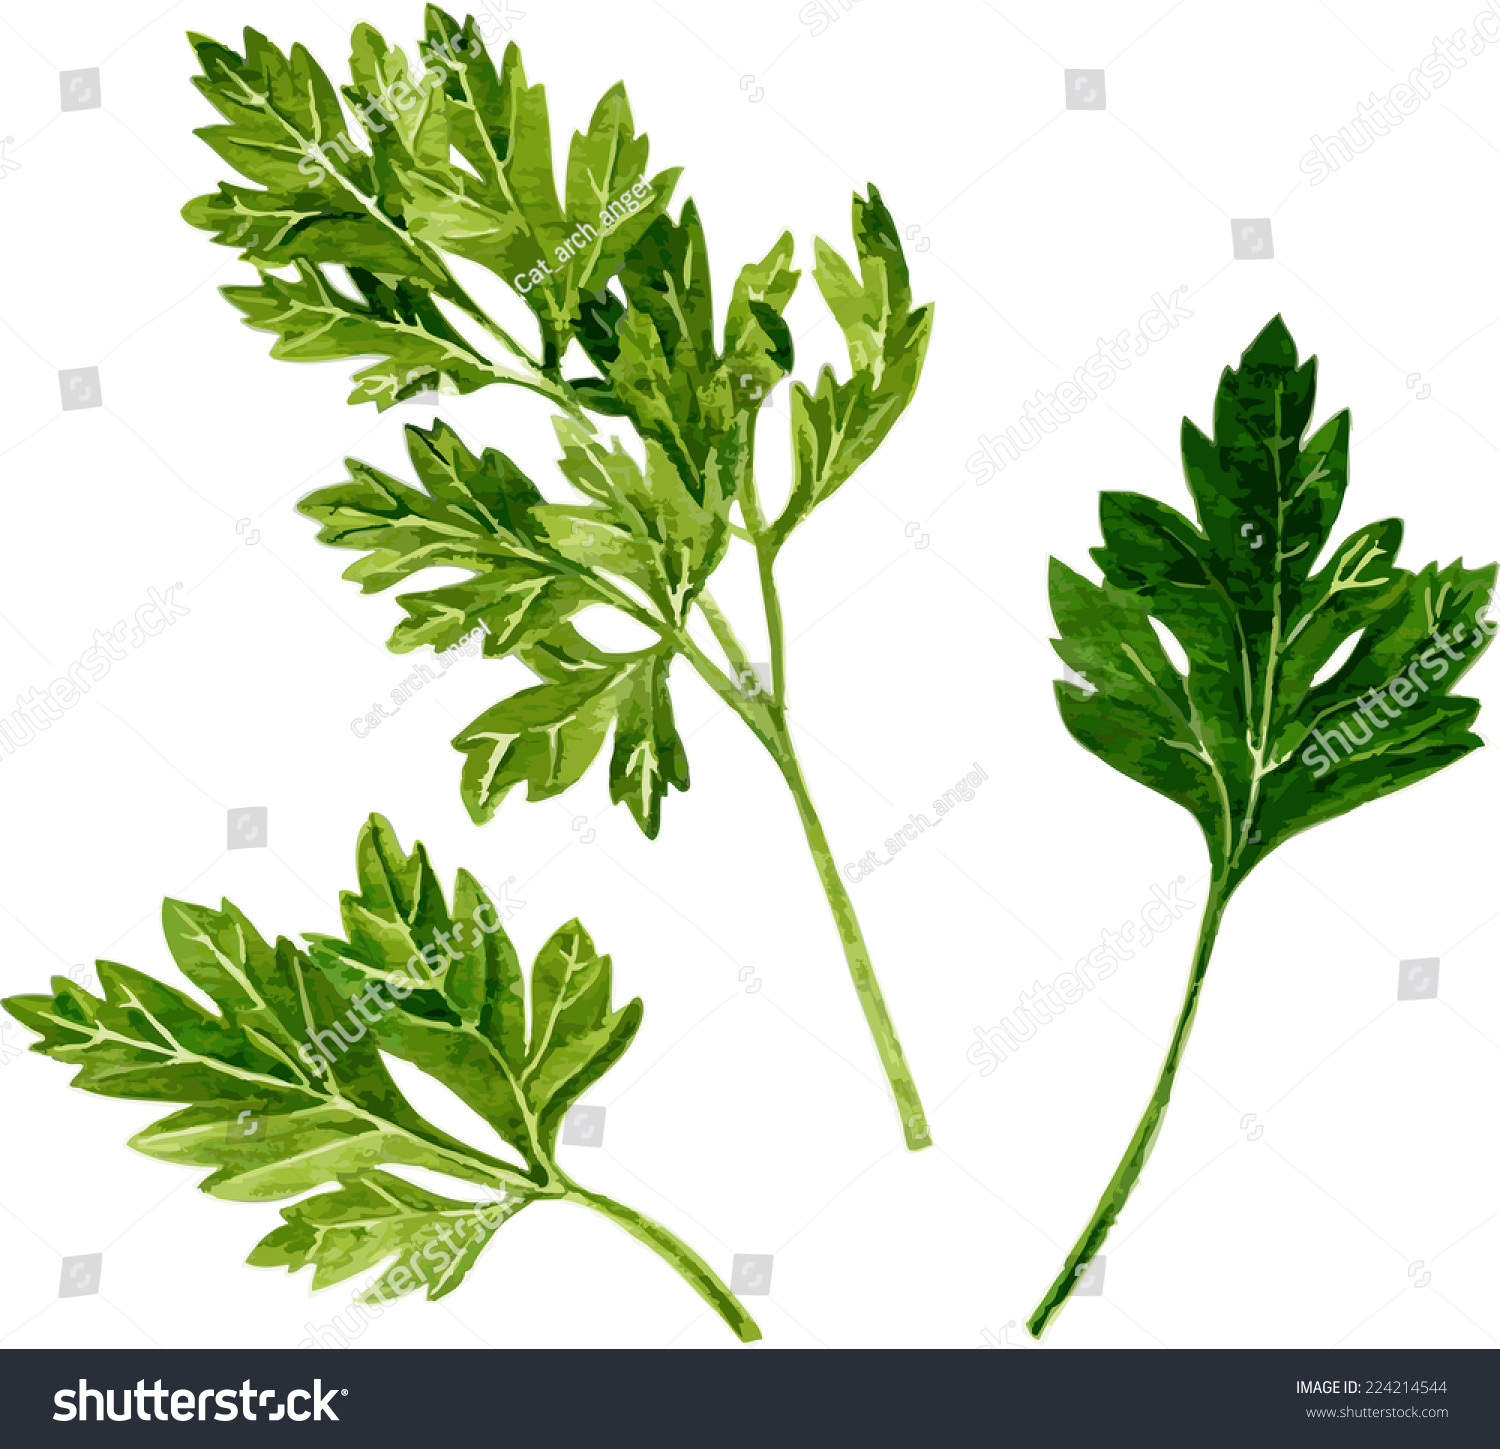 Parsley Illustration Leaves Of Parsley Draw...